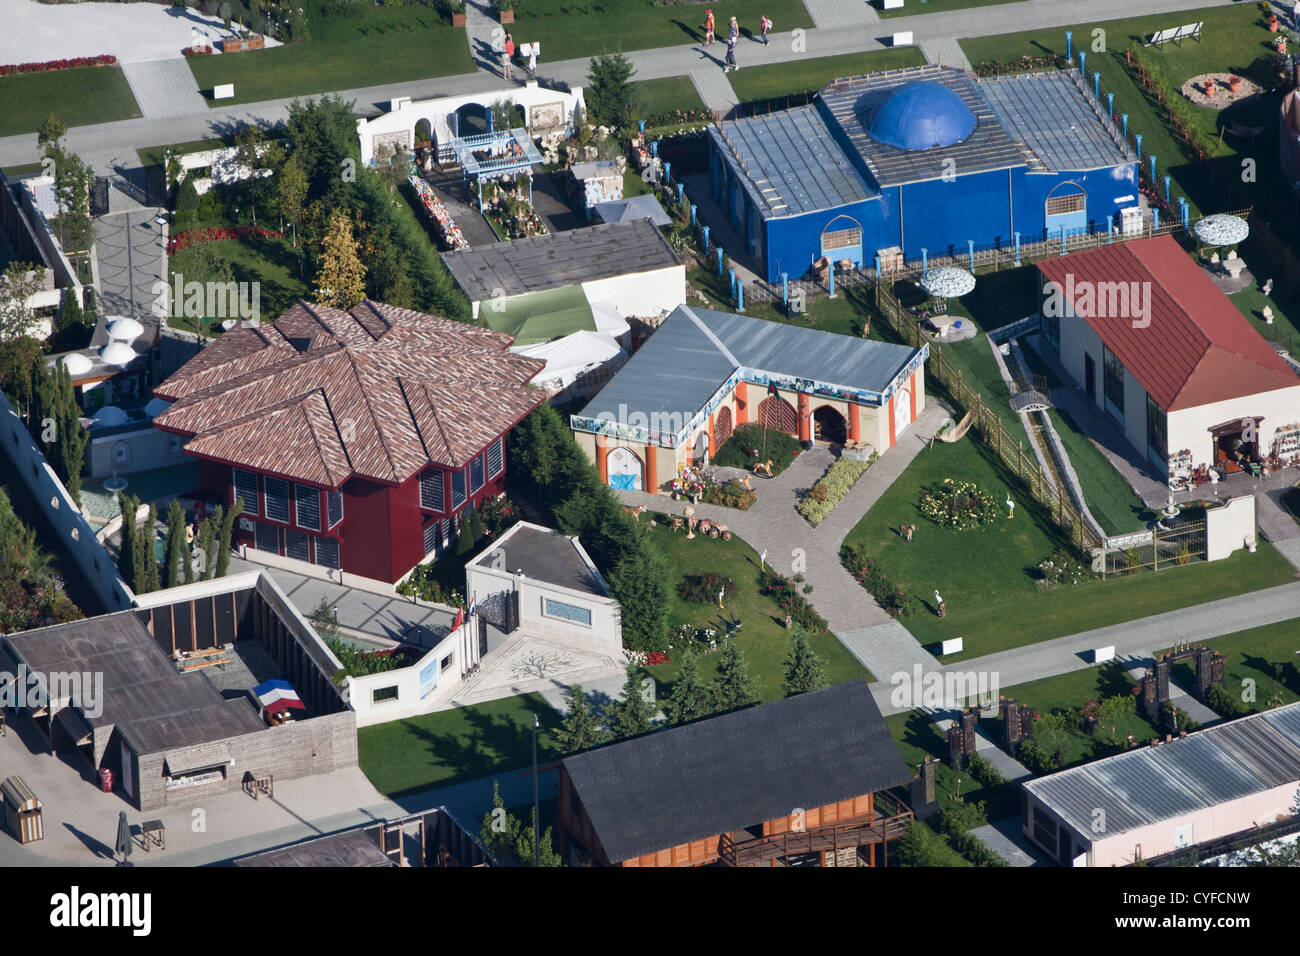 The Netherlands, Venlo, FLORIADE, the World Horticultural Expo 2012, once every 10 years. Aerial. - Stock Image